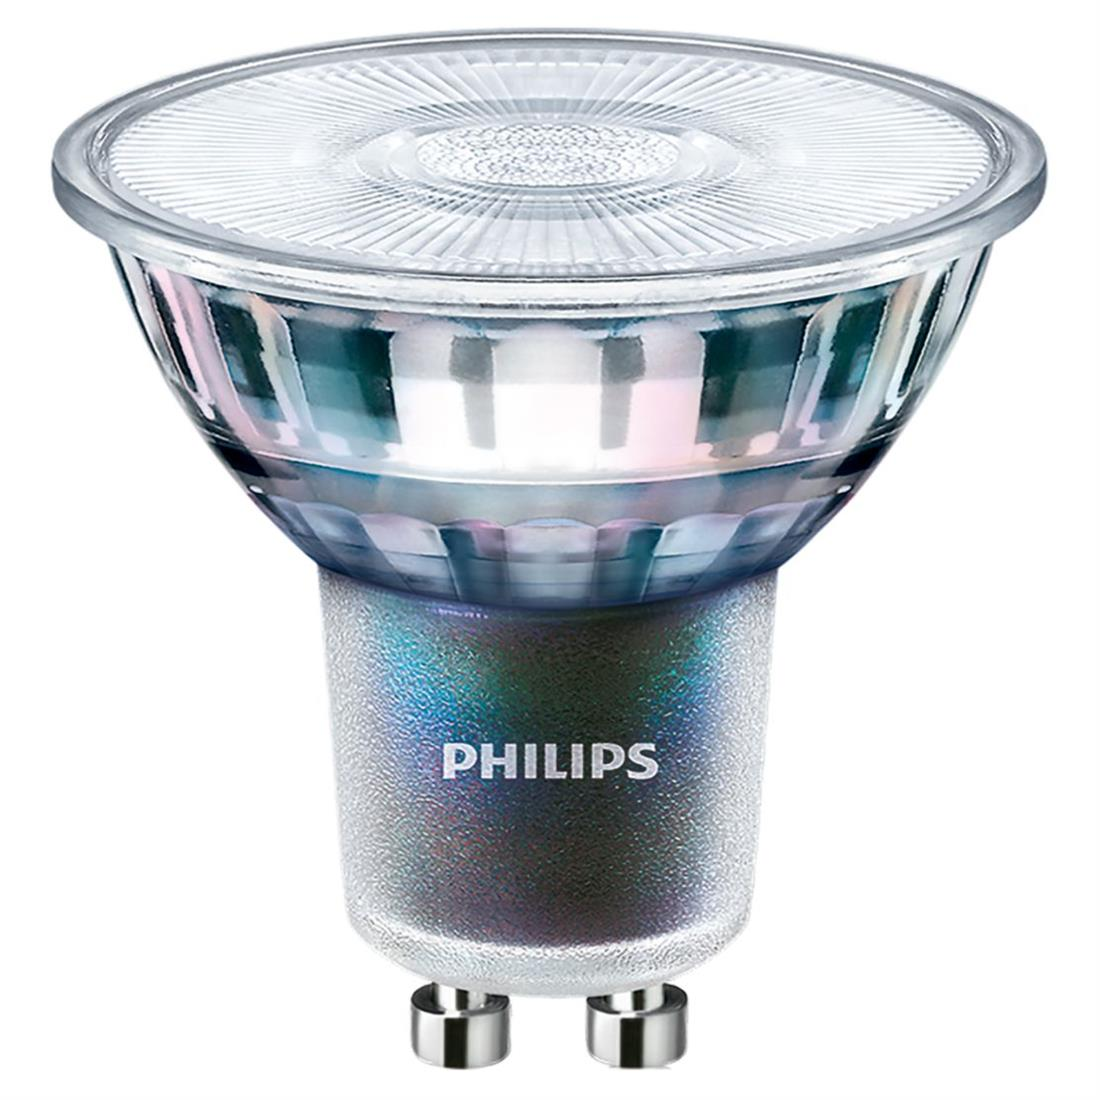 PHILIPS GU10 led lamp dimbaar 5.5W-50W warmwit 2700 kelvin 36gr CRI90